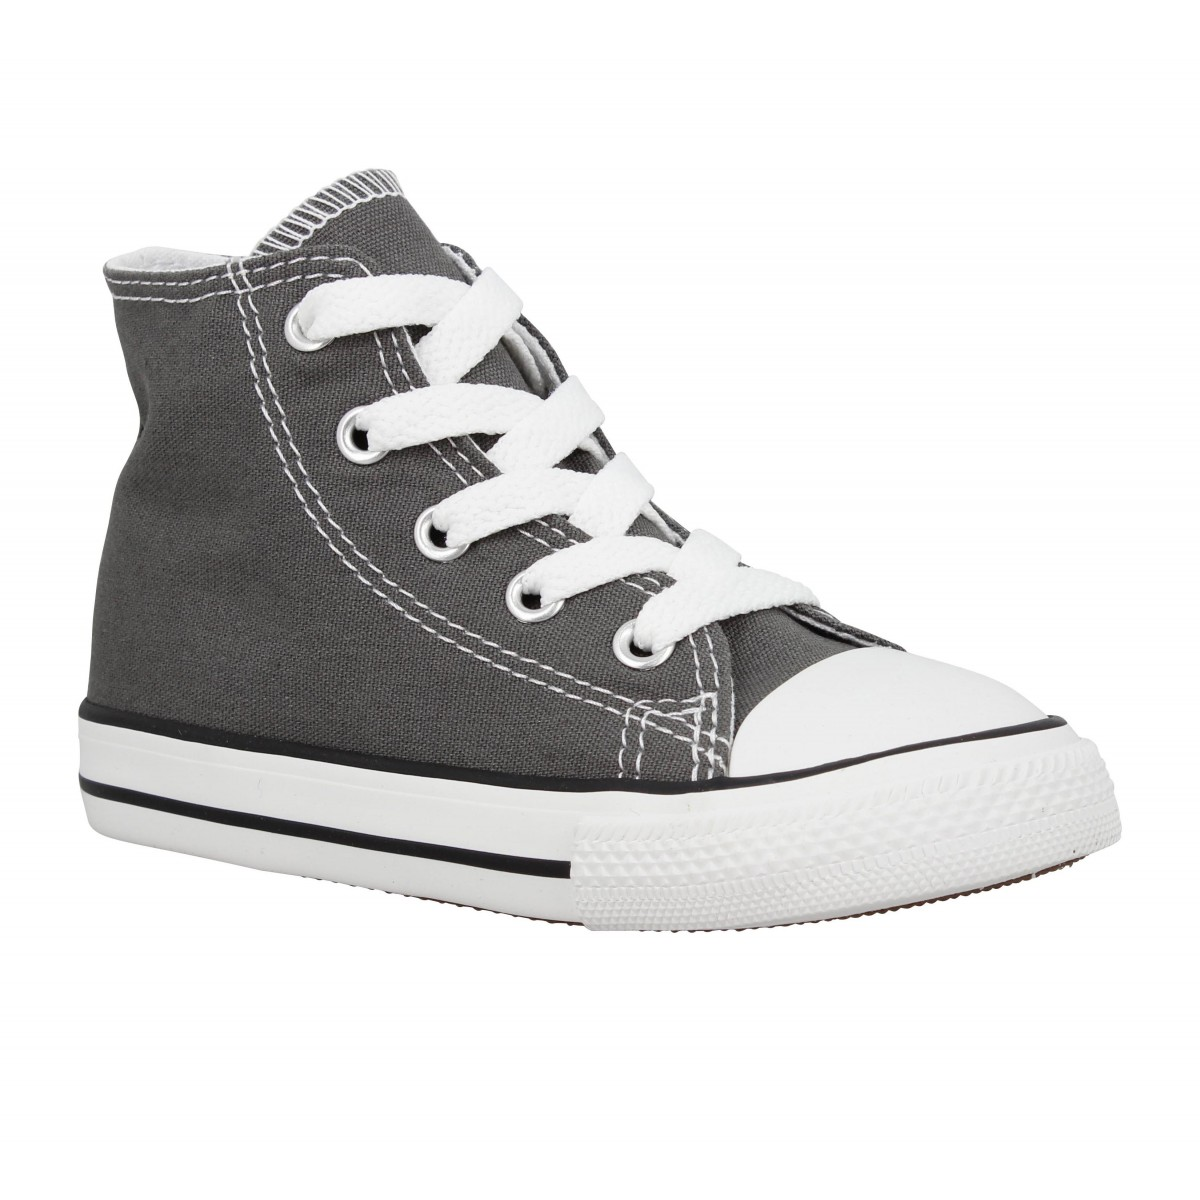 Baskets CONVERSE Chuck Taylor All Star Hi toile Enfant Anthracite